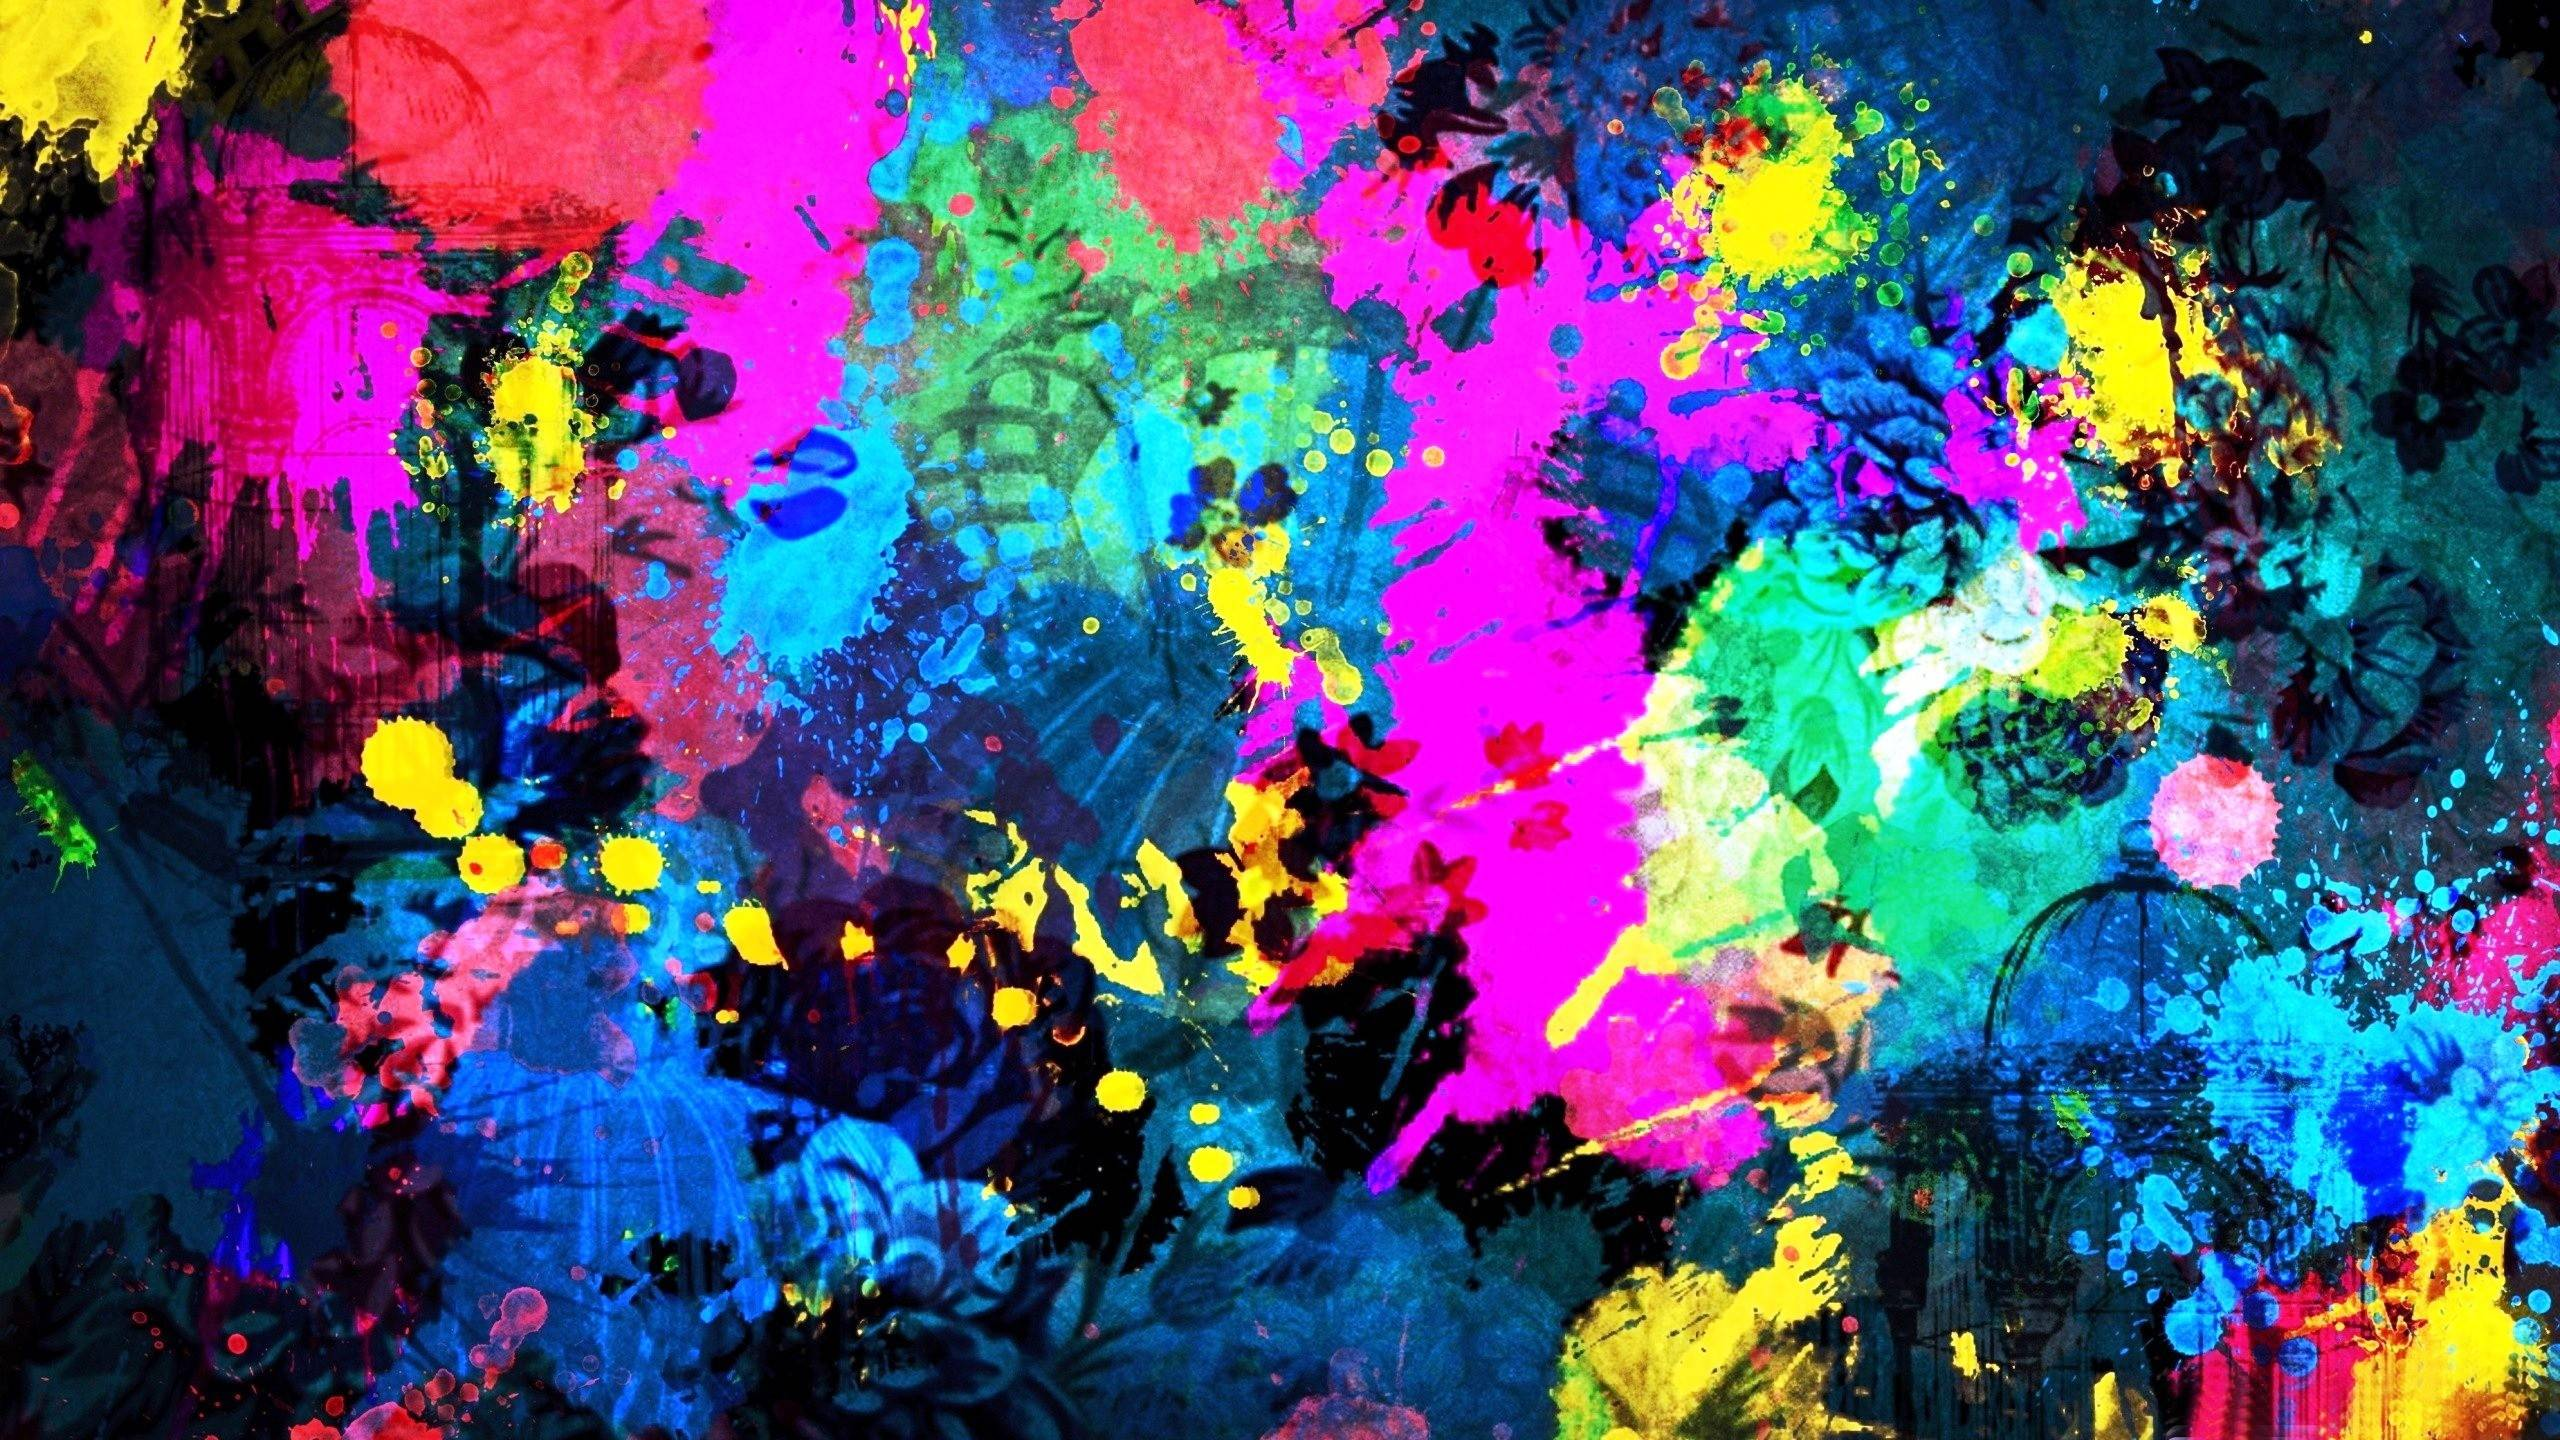 abstract painting wallpapers wallpaper - photo #18